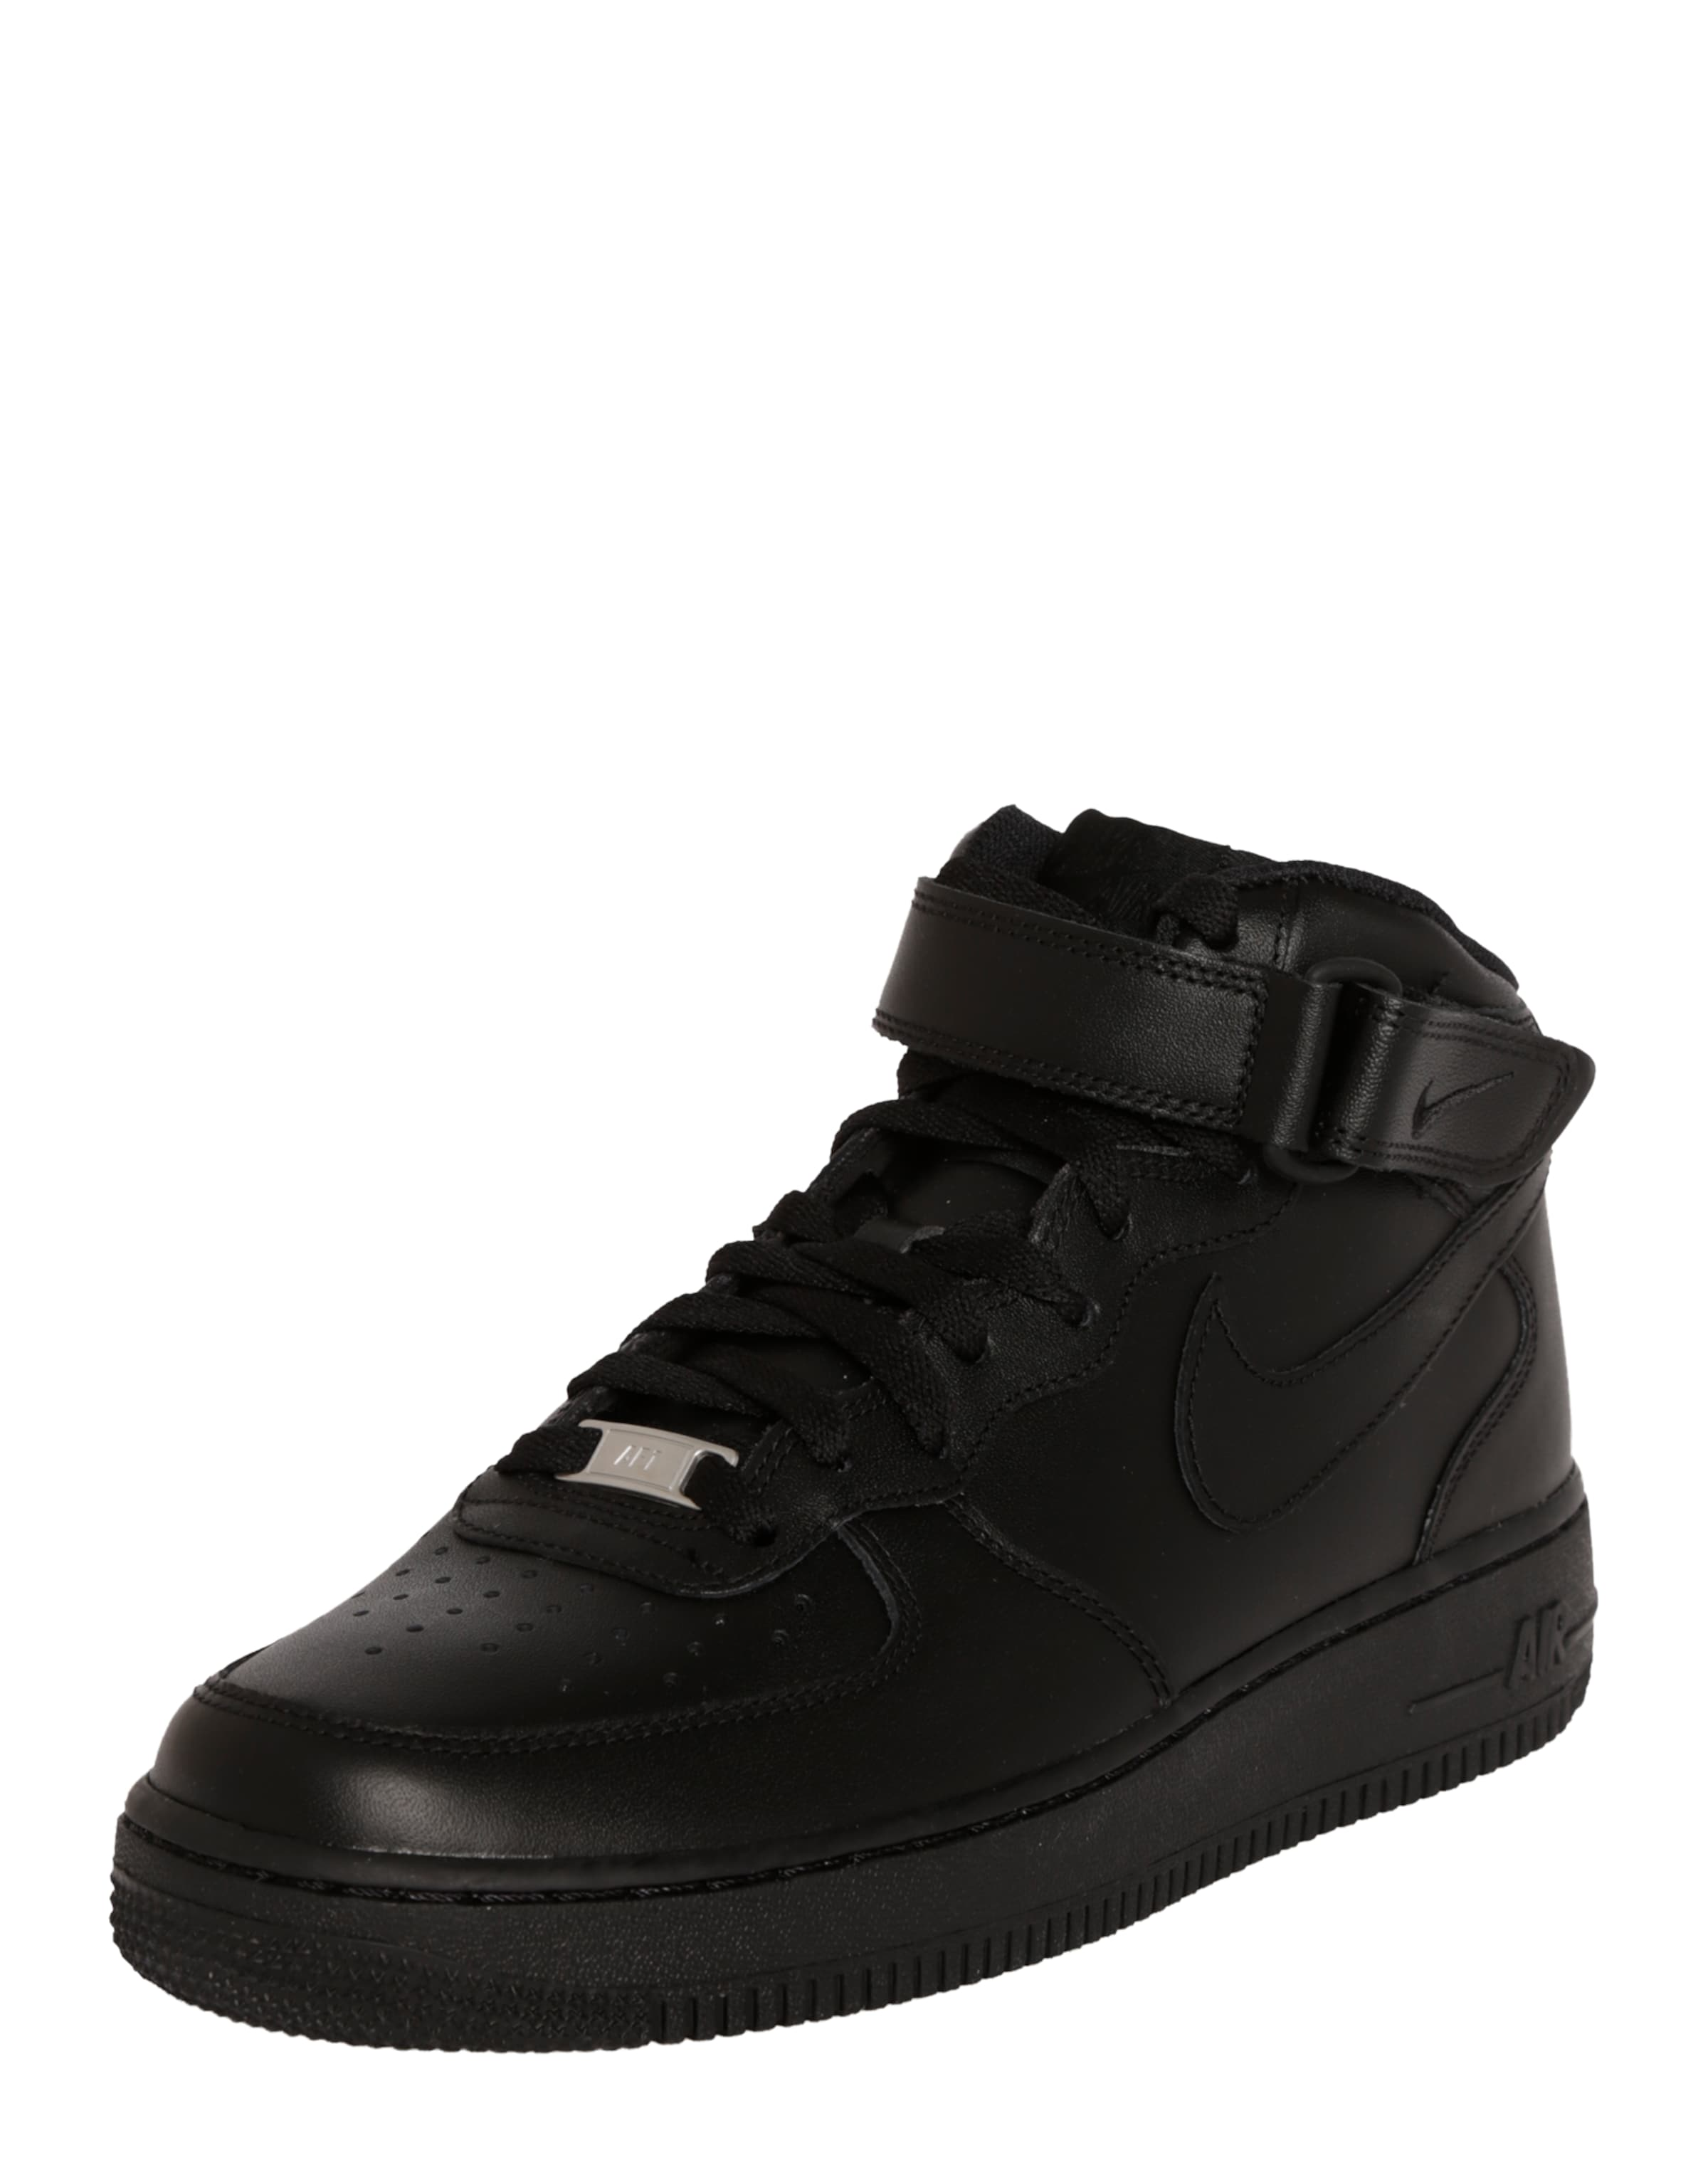 'air Nike Schwarz In Sportswear Force Mid' Sneaker yvN8nOm0w